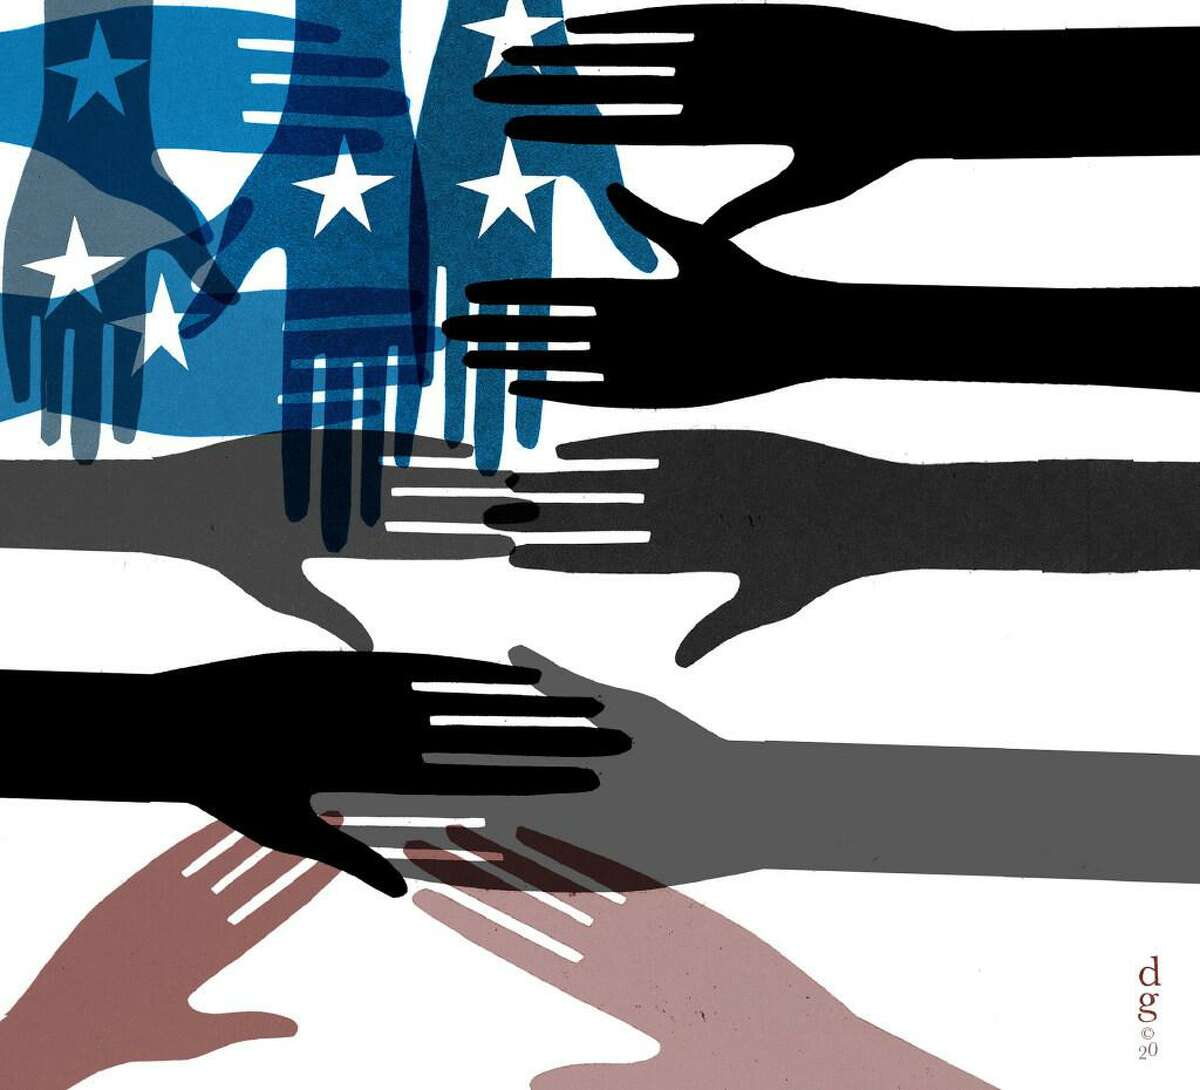 The U.S. could improve its republic by introducing direct democracy at the national level.